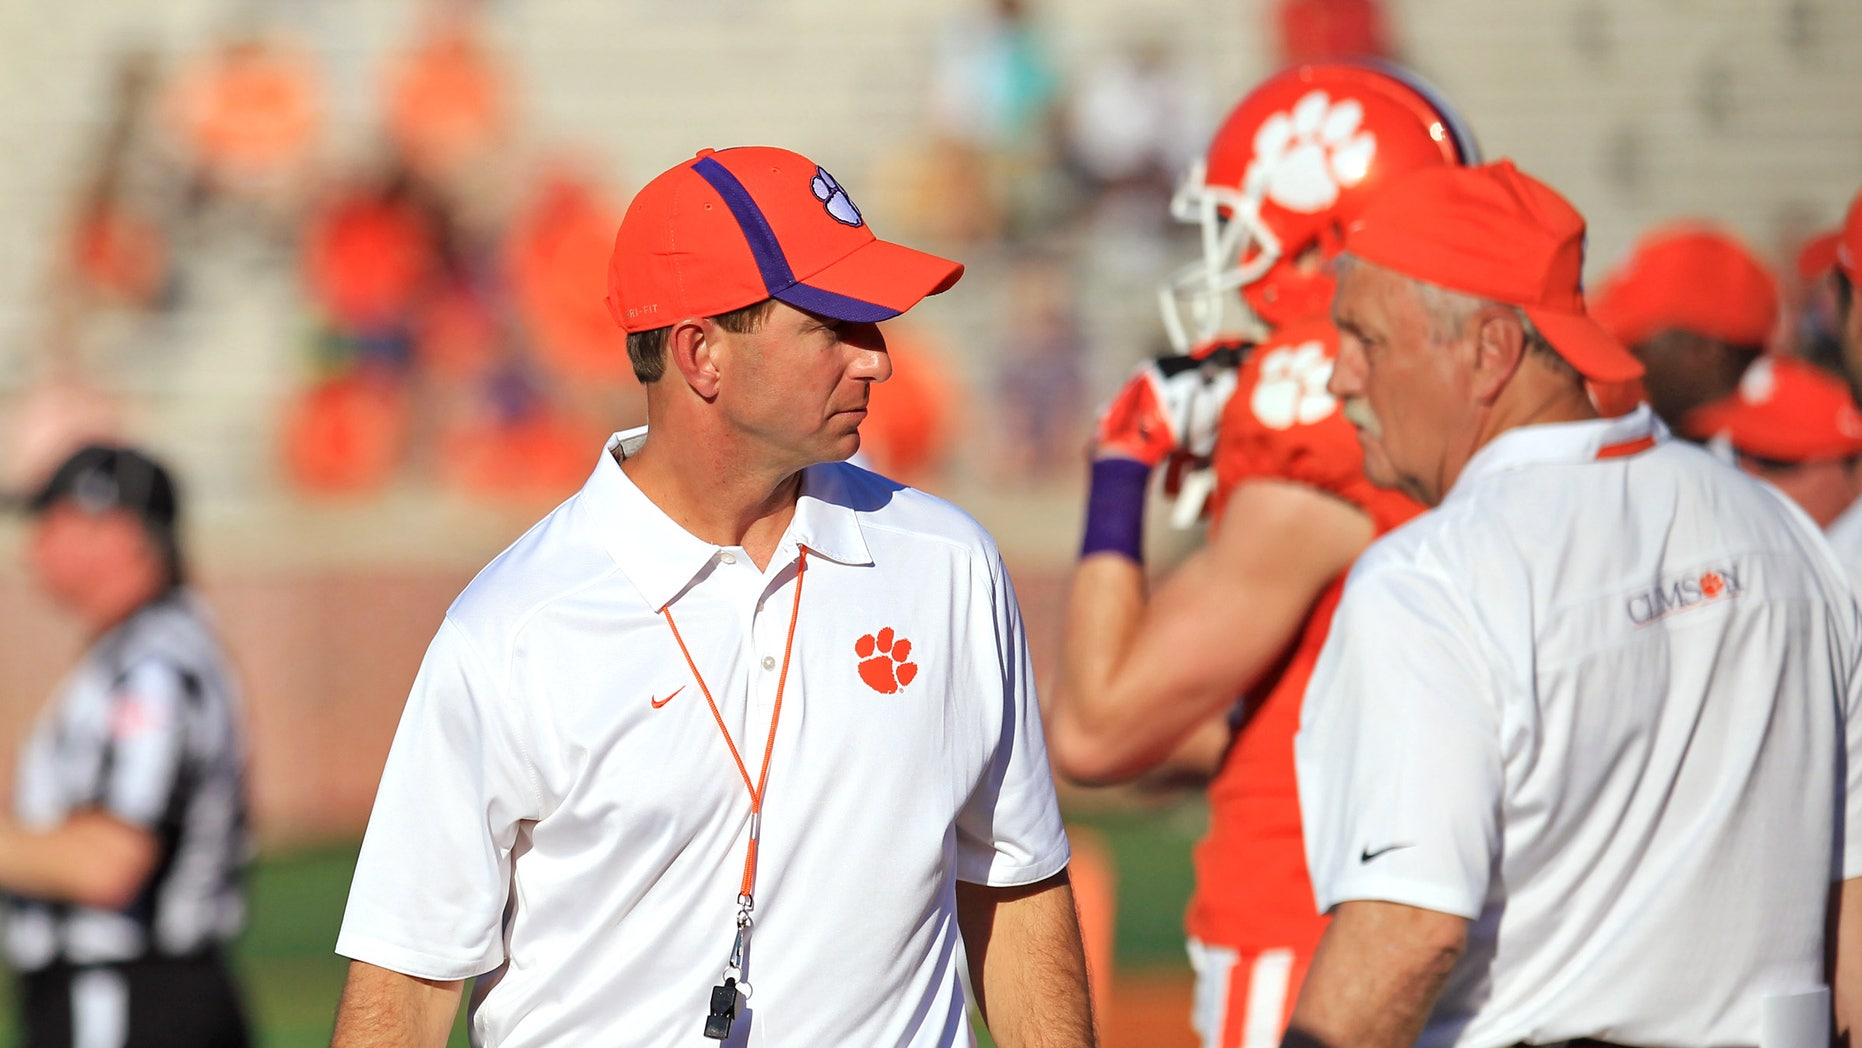 """April 12, 2014: Clemson coach Dabo Swinney walks the sideline during the NCAA college football team's spring game at Memorial Stadium in Clemson, S.C. University officials deny claims that Christianity is """"interwoven"""" into Swinney's program. (AP/Anderson Independent-Mail, Mark Crammer)"""